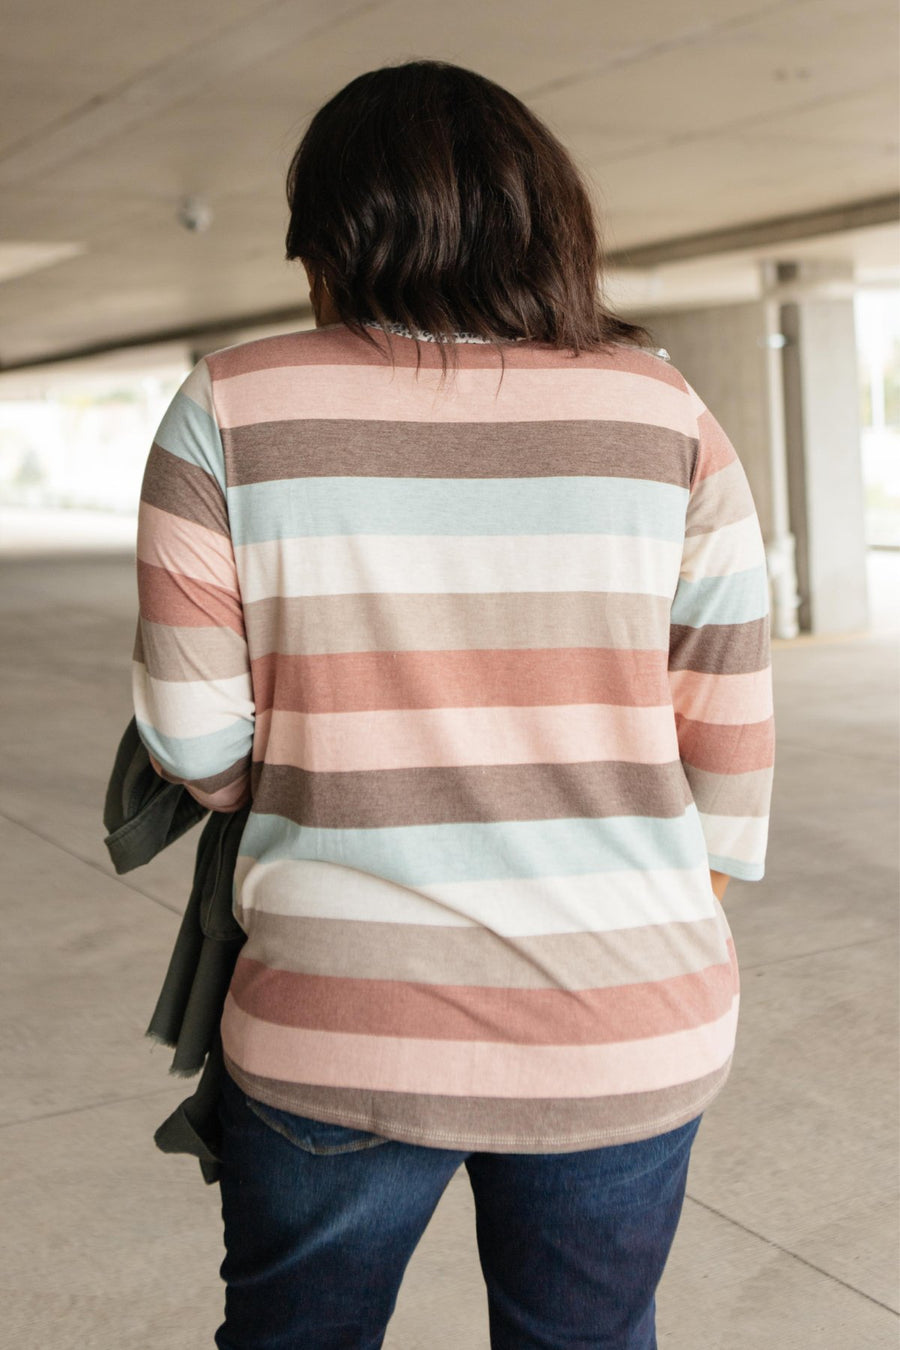 Glimmer Of Autumn Striped Top